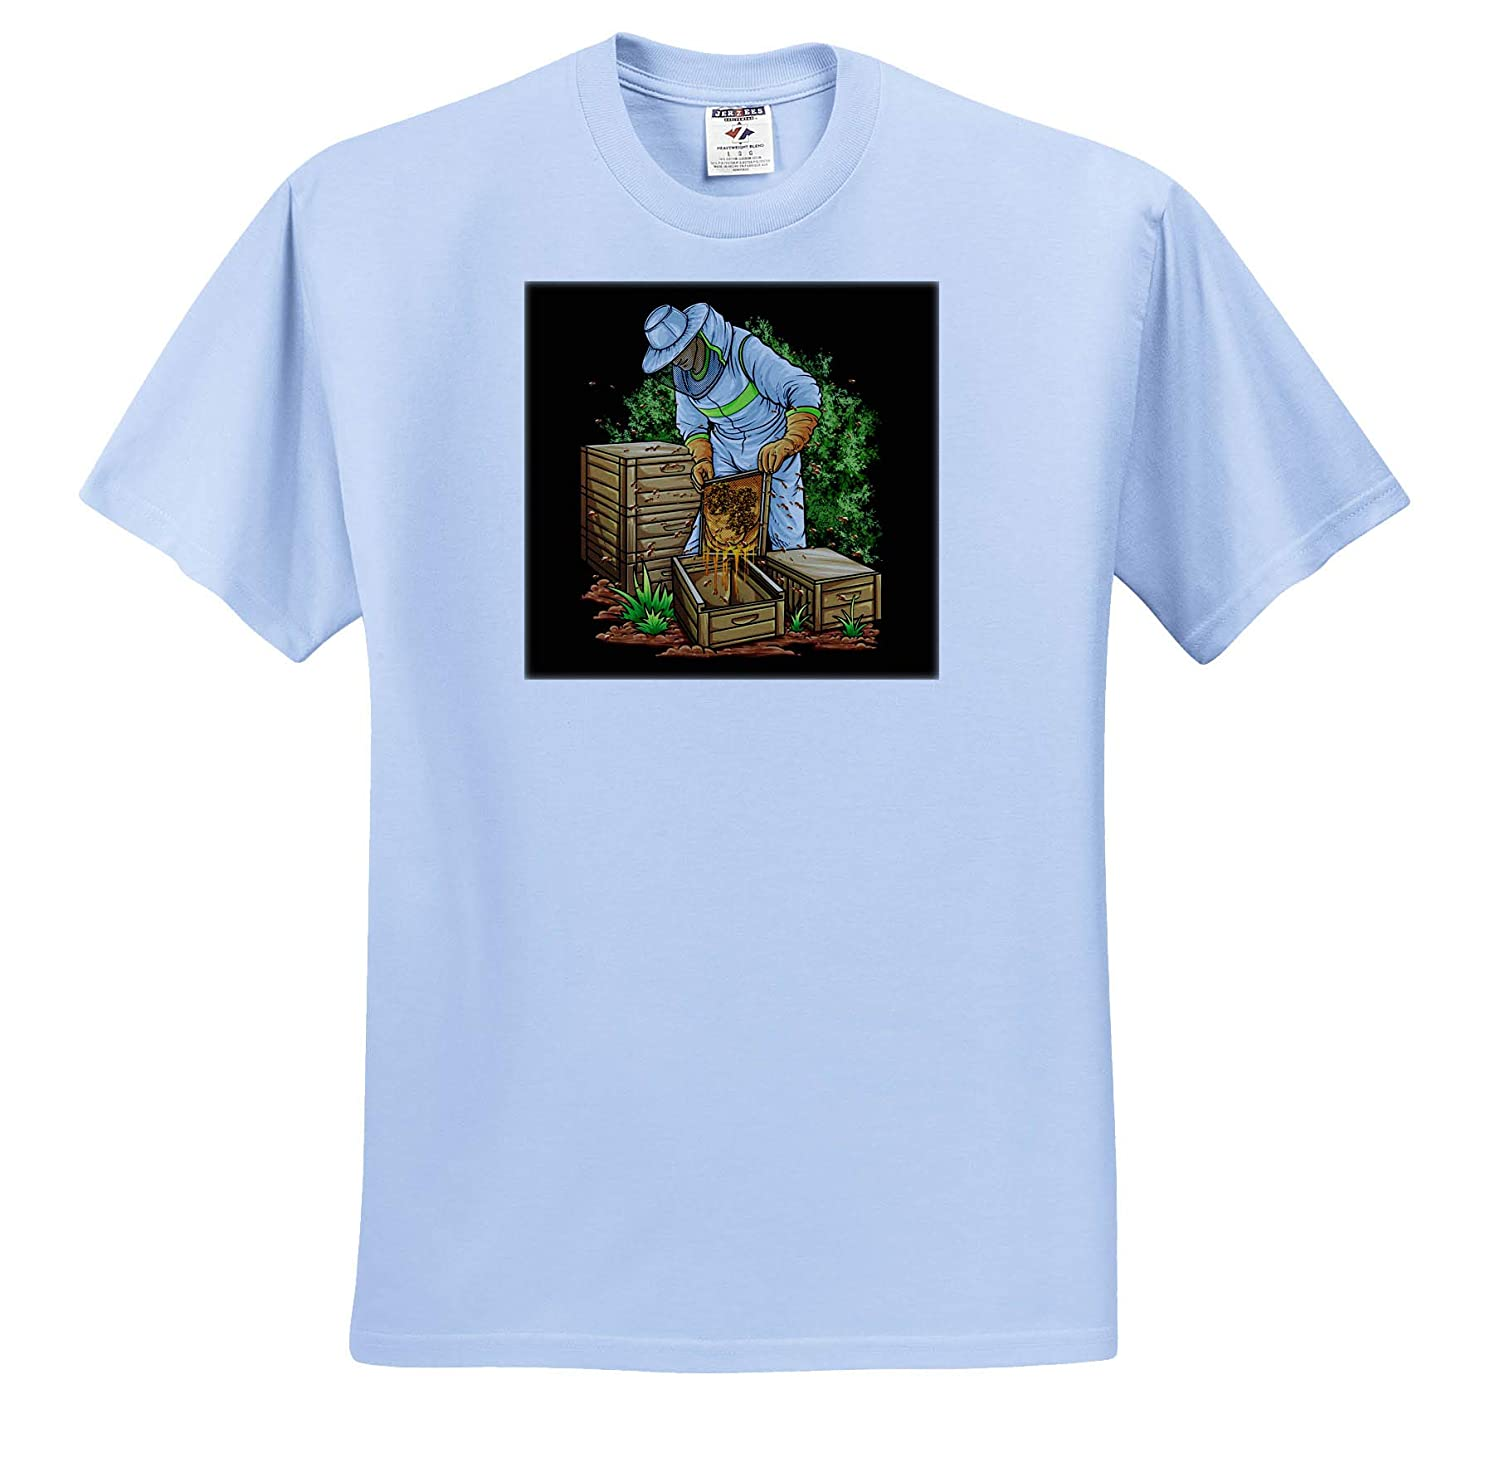 3dRose Sven Herkenrath Beekeeper ts/_314104 Adult T-Shirt XL Illustration of Beekeeper with Bees and Honeycomb Honey